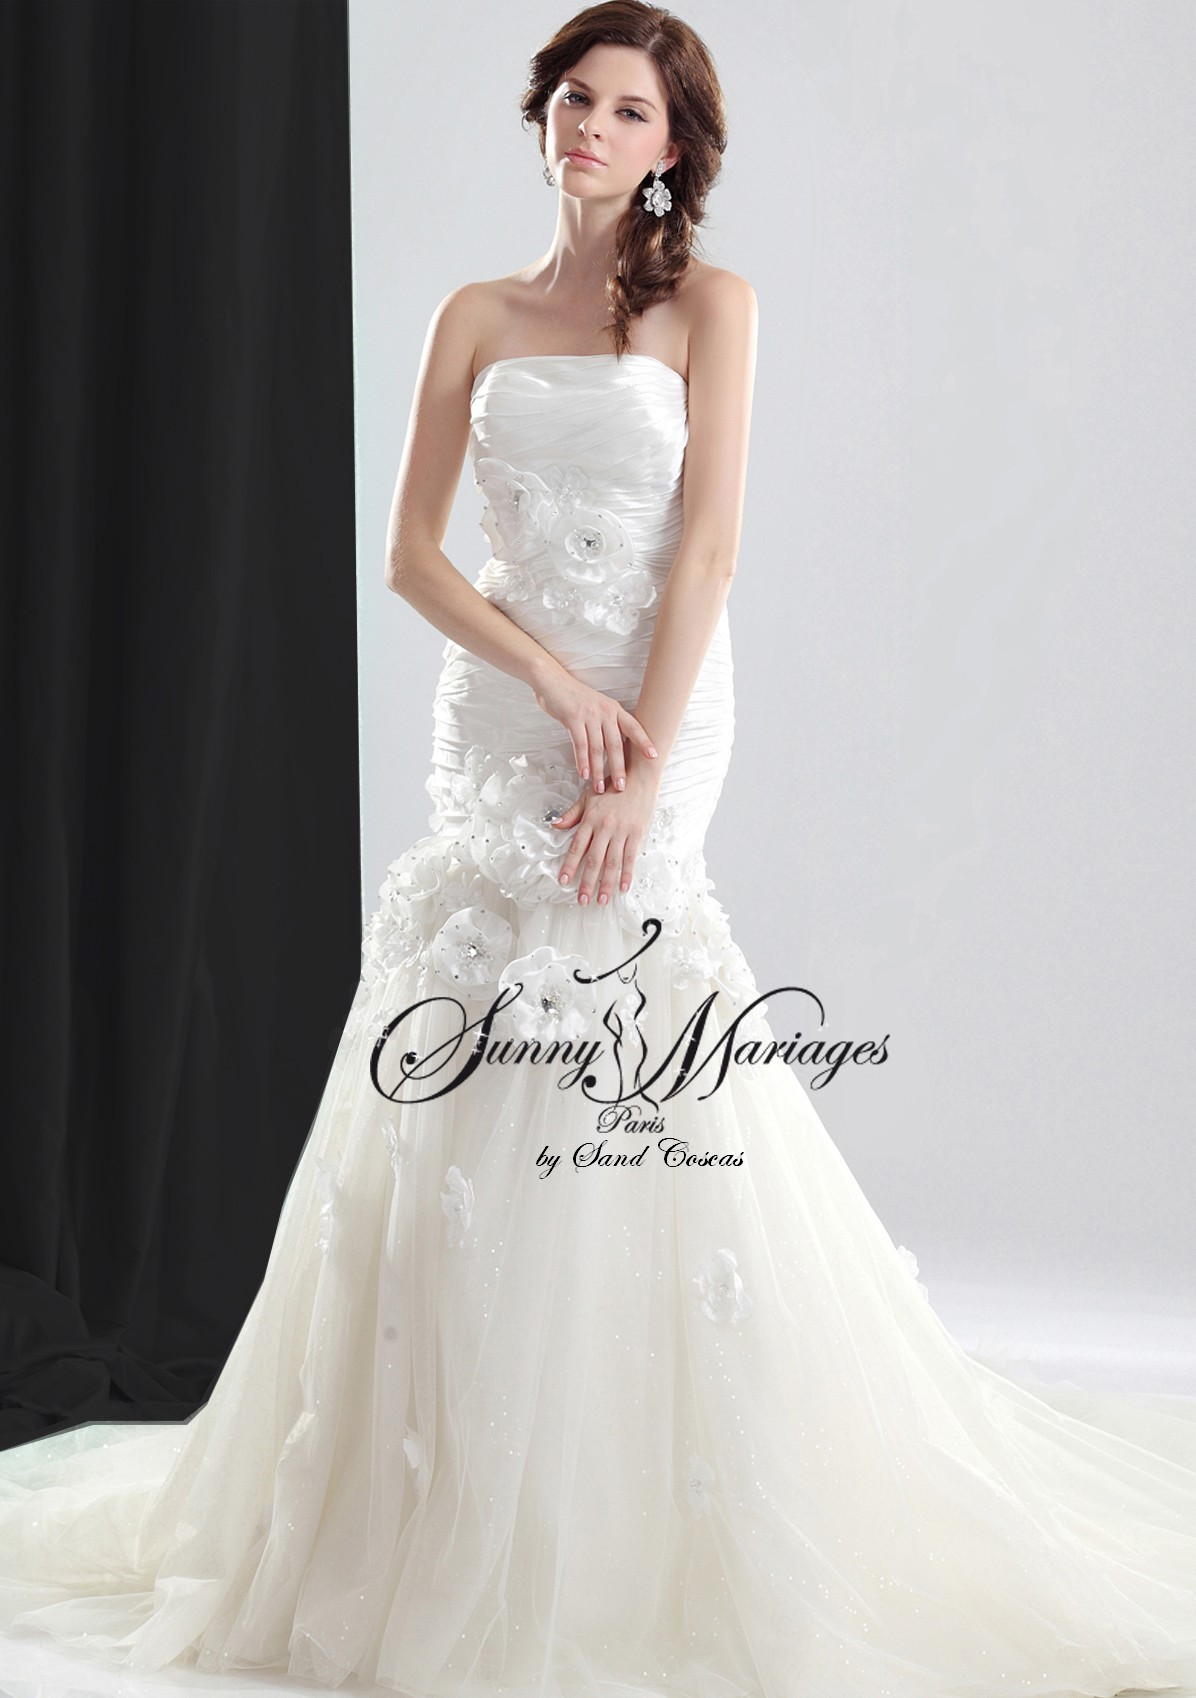 Robe En Tulle Fluide Collection Robes De Mariee SUNNY MARIAGES Vente